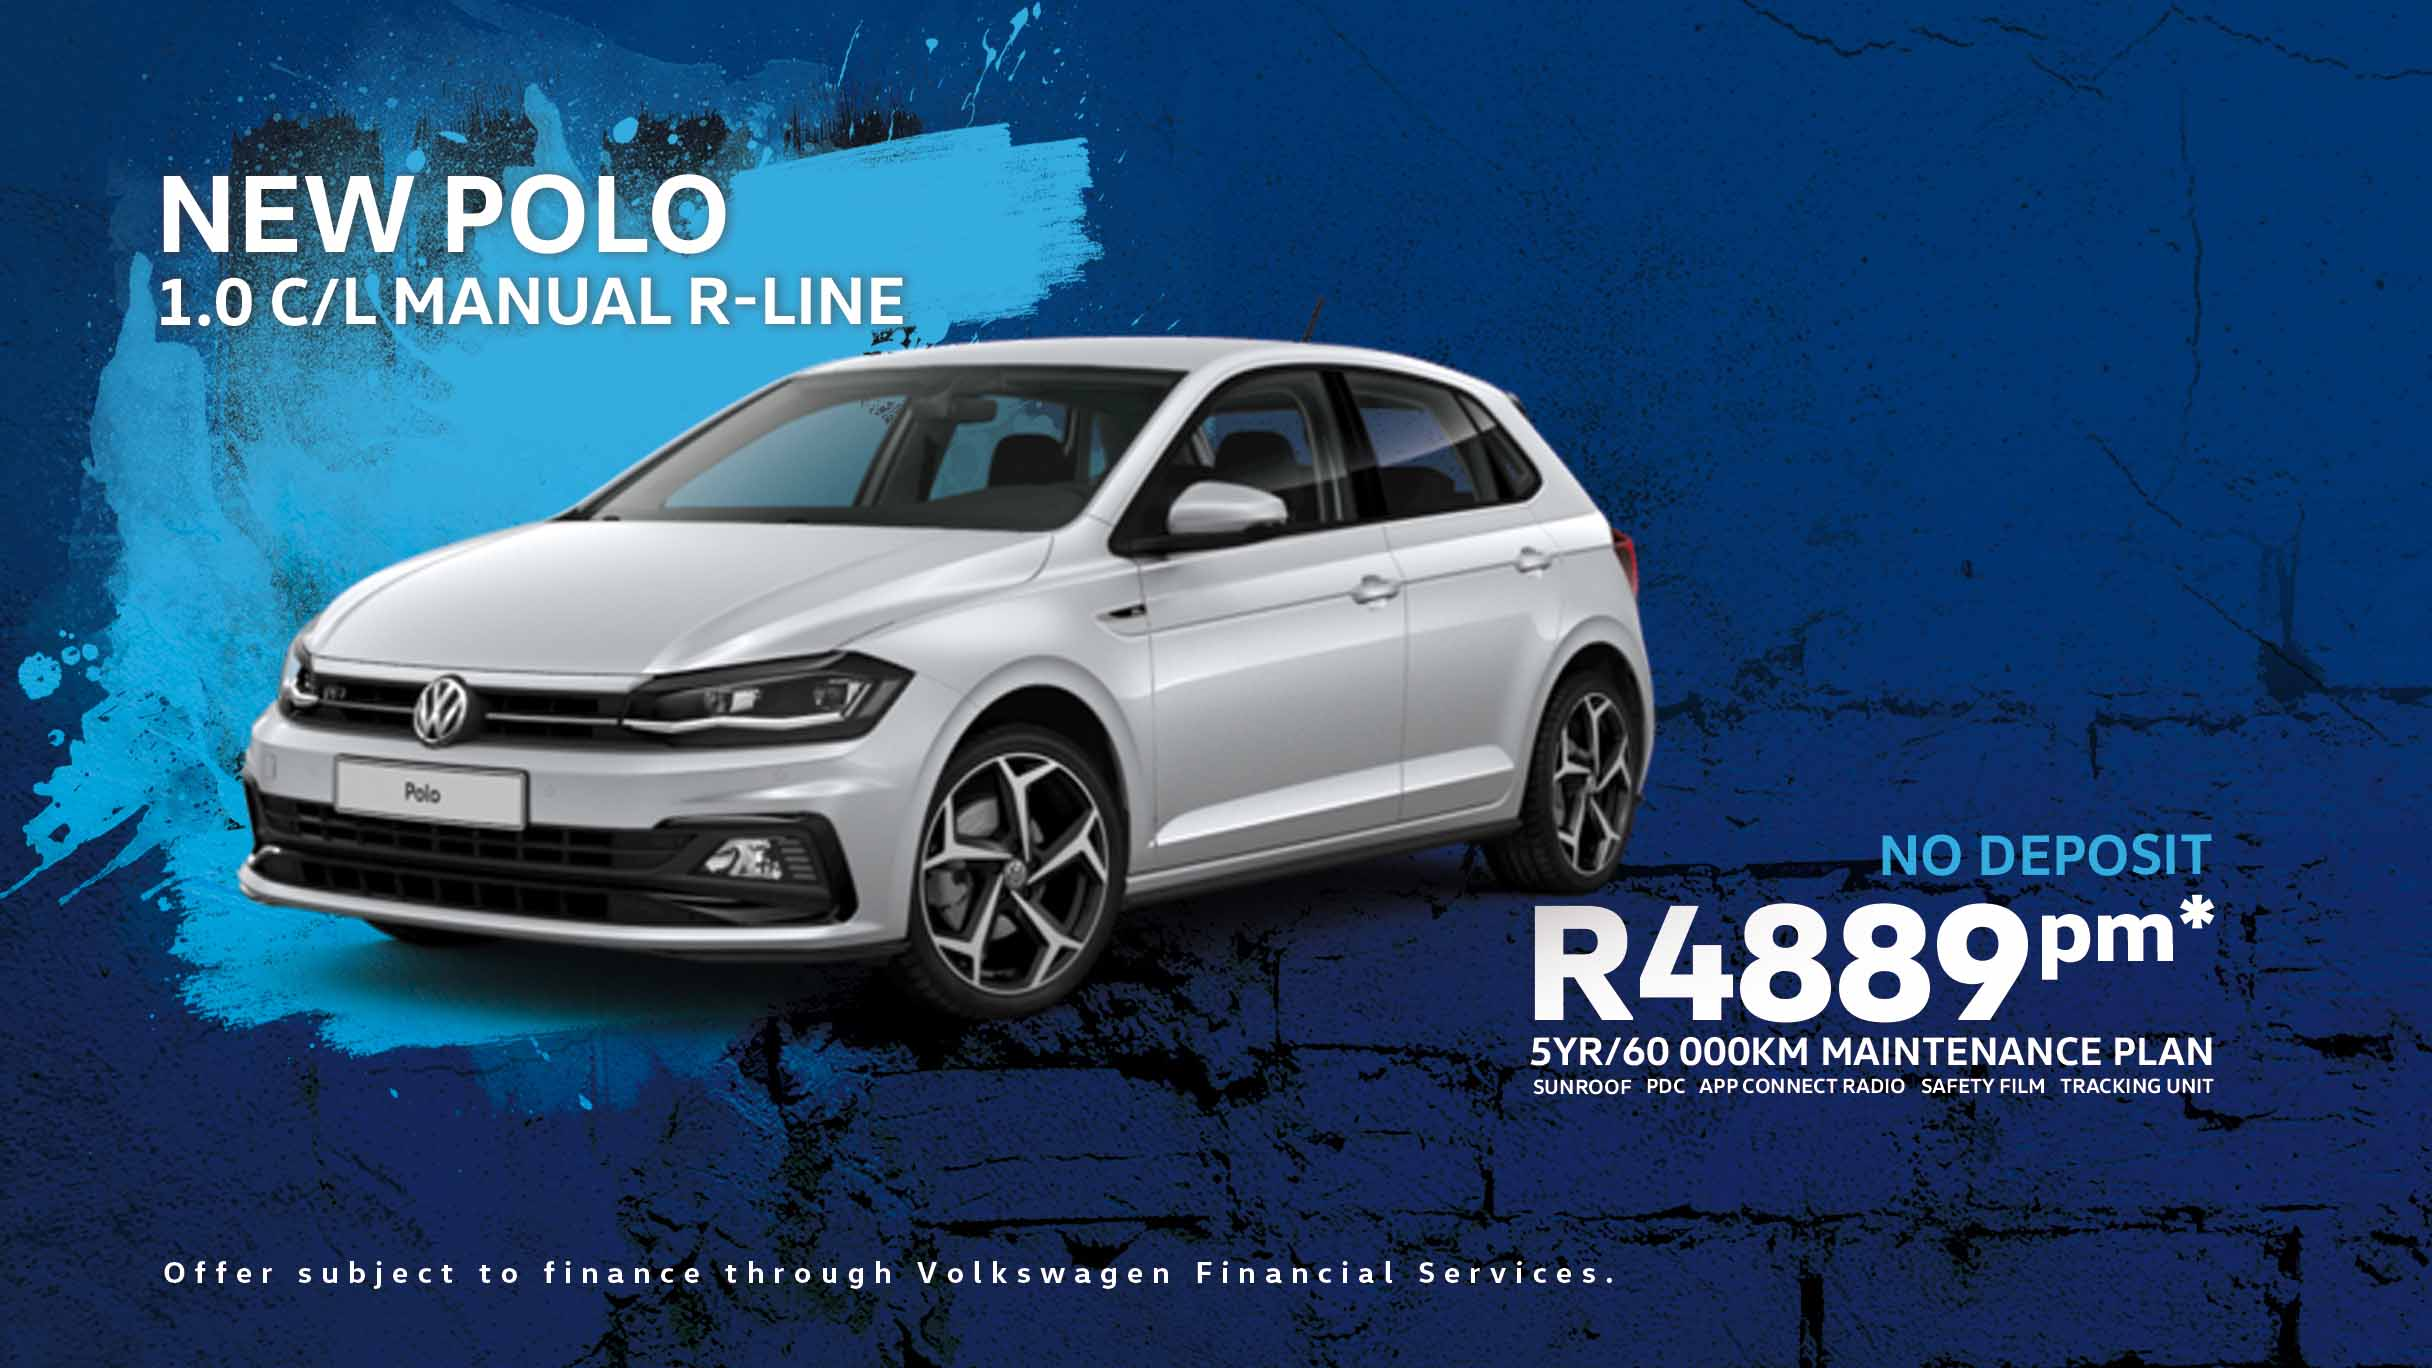 Barons Bruma Polo special offer